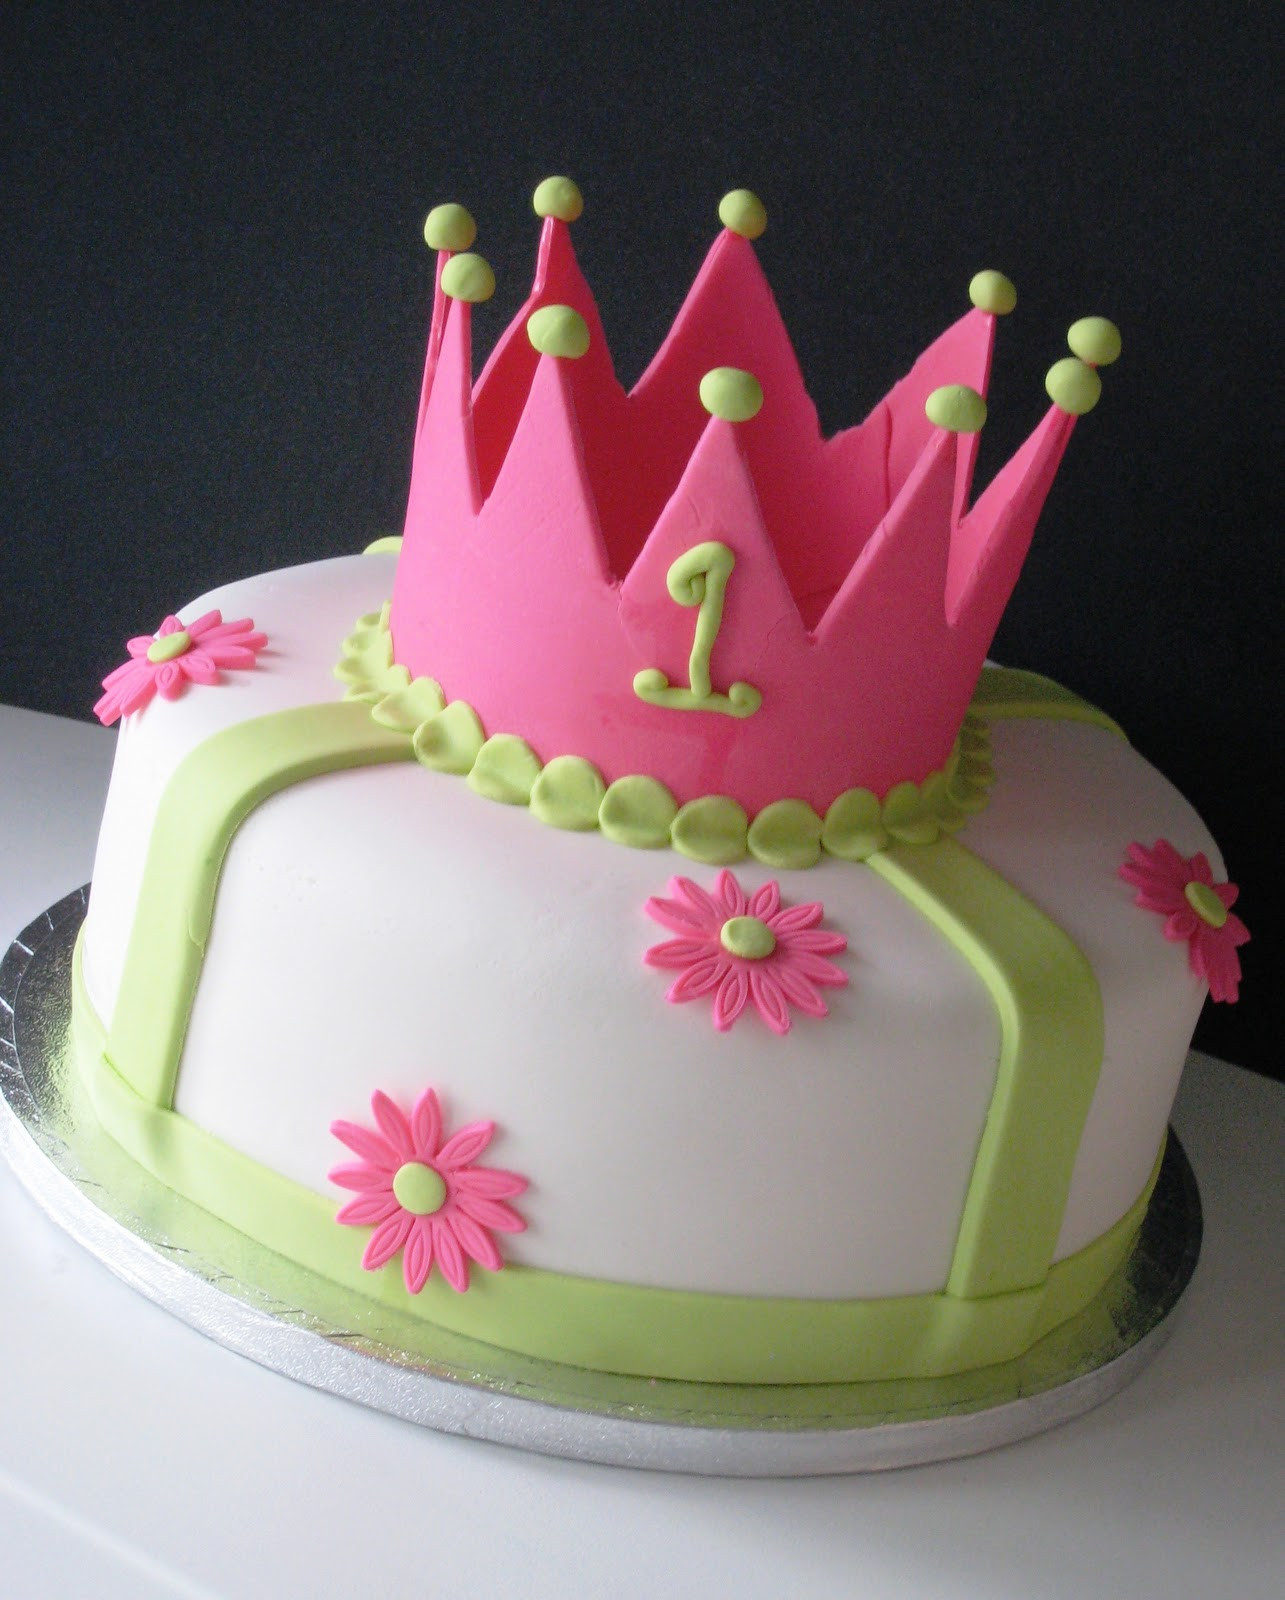 Best ideas about Princess Birthday Cake . Save or Pin Heavenly Bites Cakes Princess 1st Birthday Now.